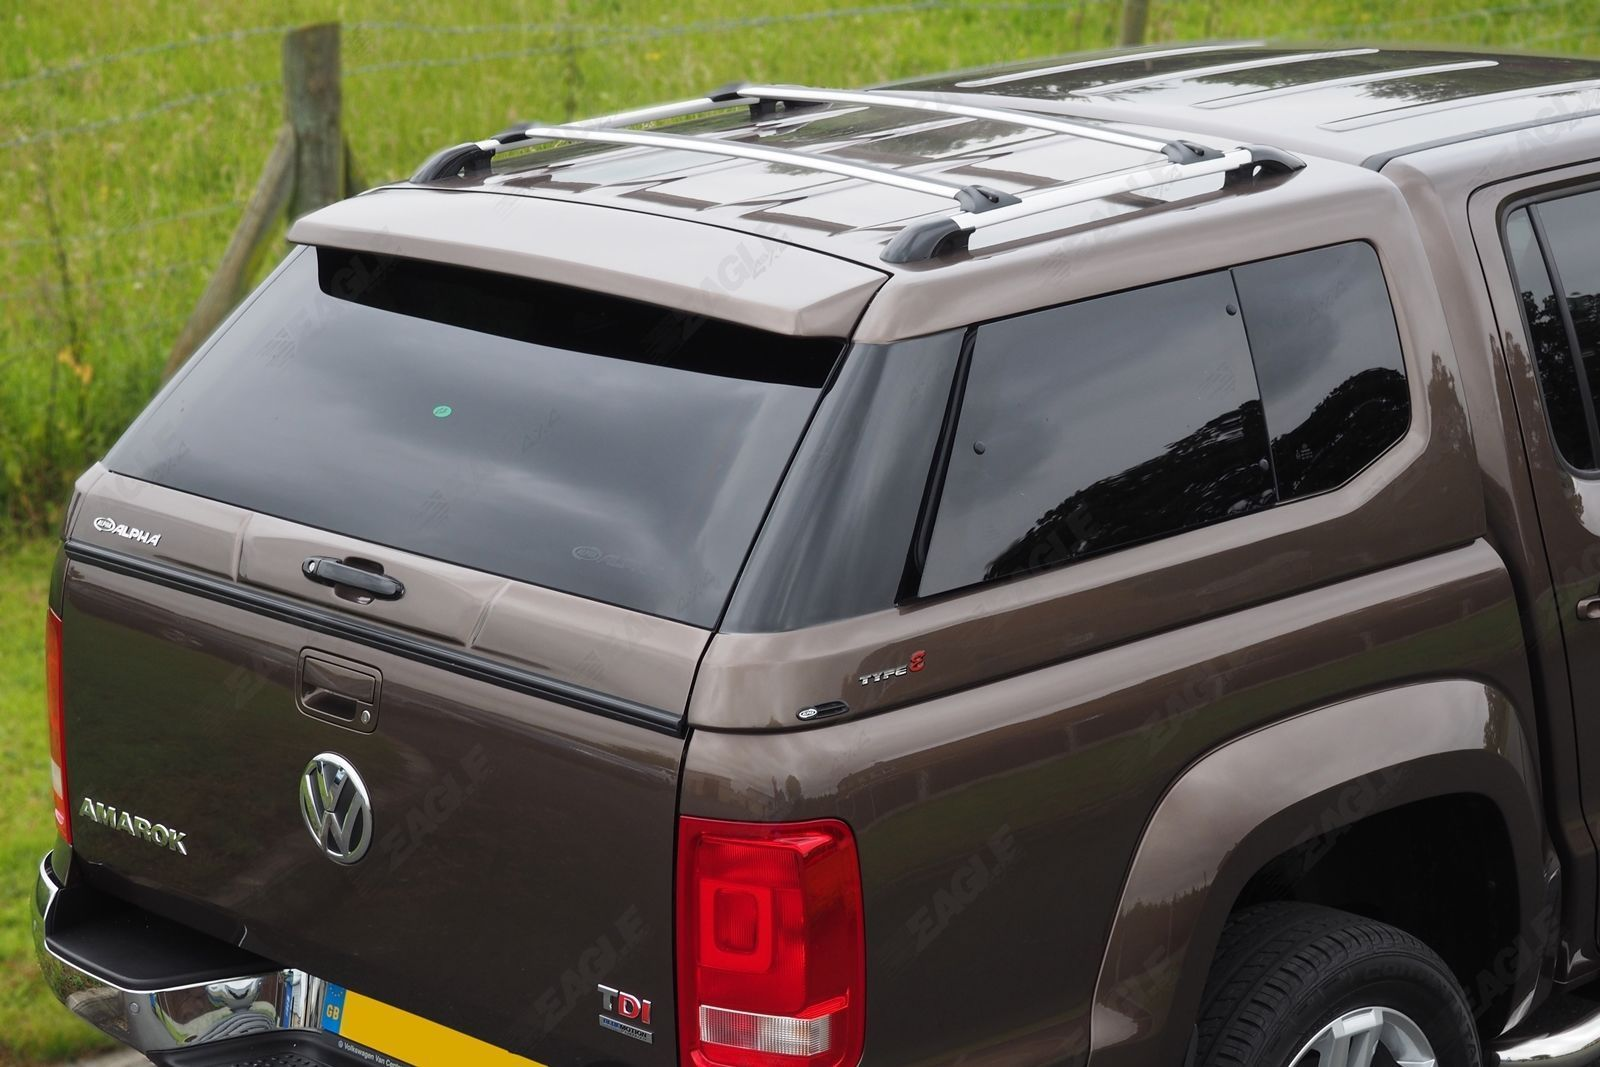 Sentinel VW Amarok Hardtop Canopy - Alpha Type E - Hard Top with Central Locking & VW Amarok Hardtop Canopy - Alpha Type E - Hard Top with Central ...